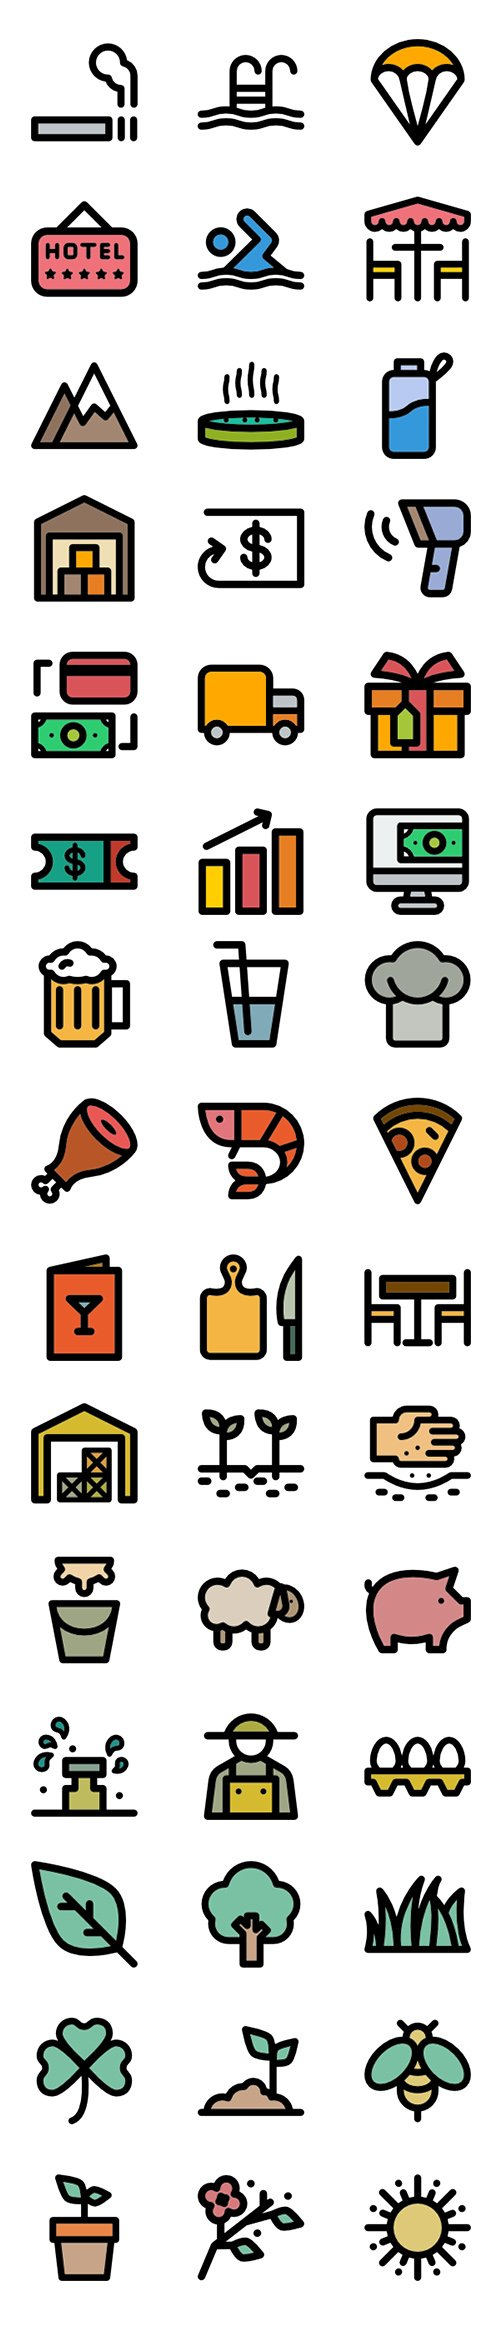 350+ Curved Lineal Color Vector Icons Set